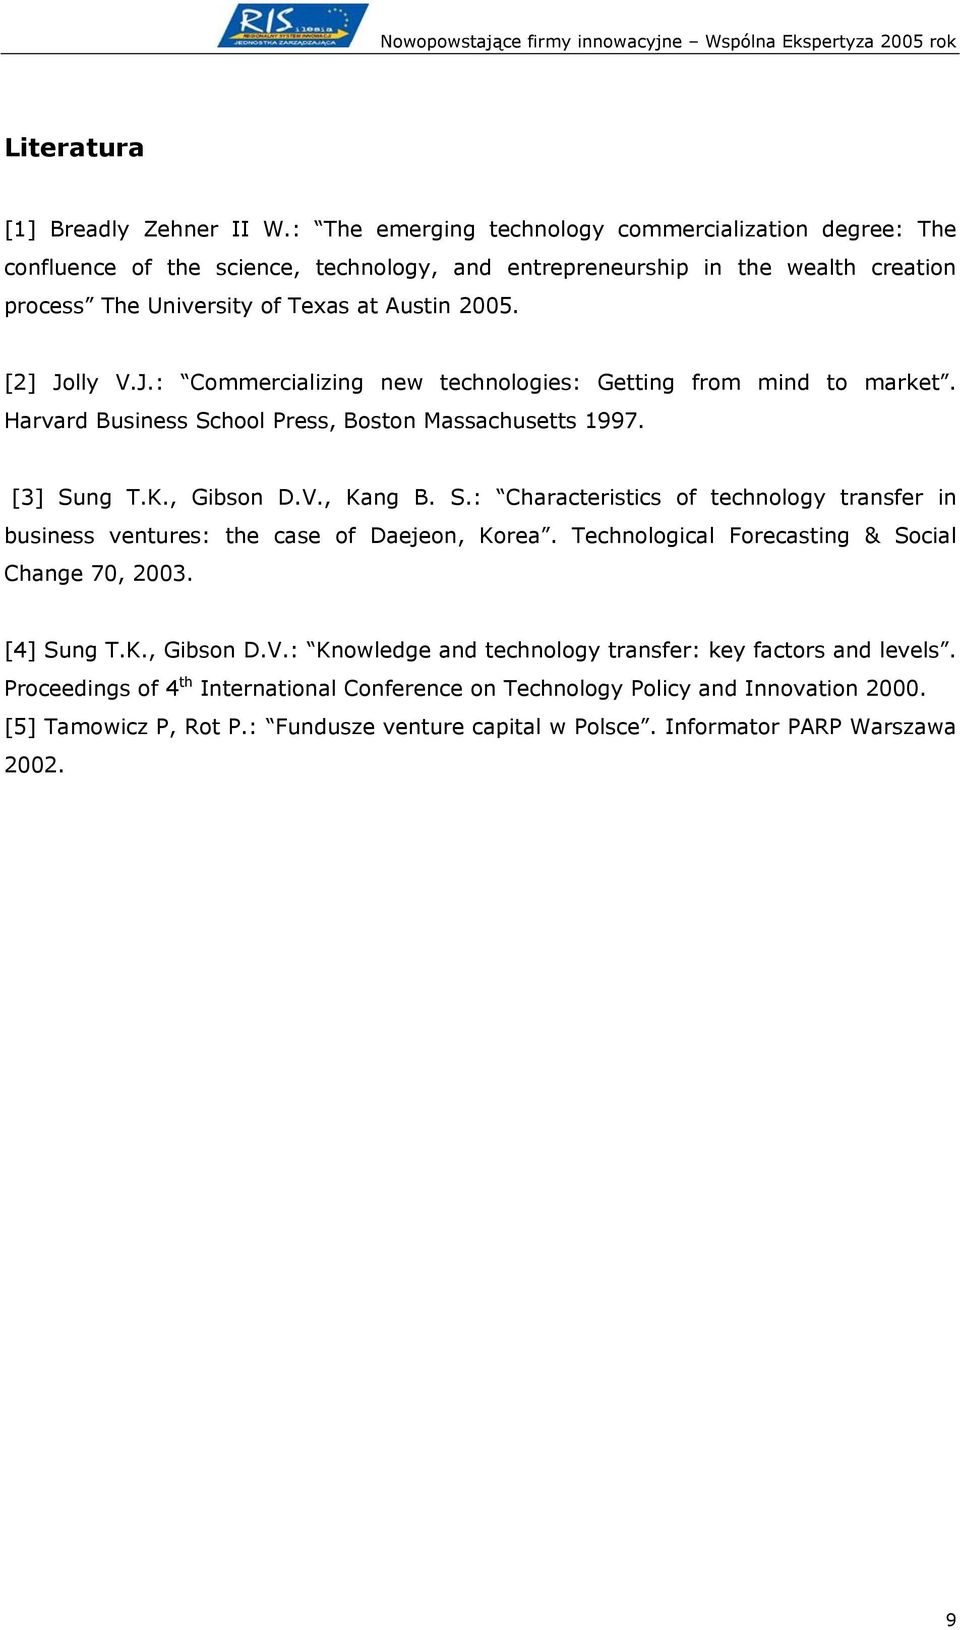 J.: Commercializing new technologies: Getting from mind to market. Harvard Business School Press, Boston Massachusetts 1997. [3] Sung T.K., Gibson D.V., Kang B. S.: Characteristics of technology transfer in business ventures: the case of Daejeon, Korea.